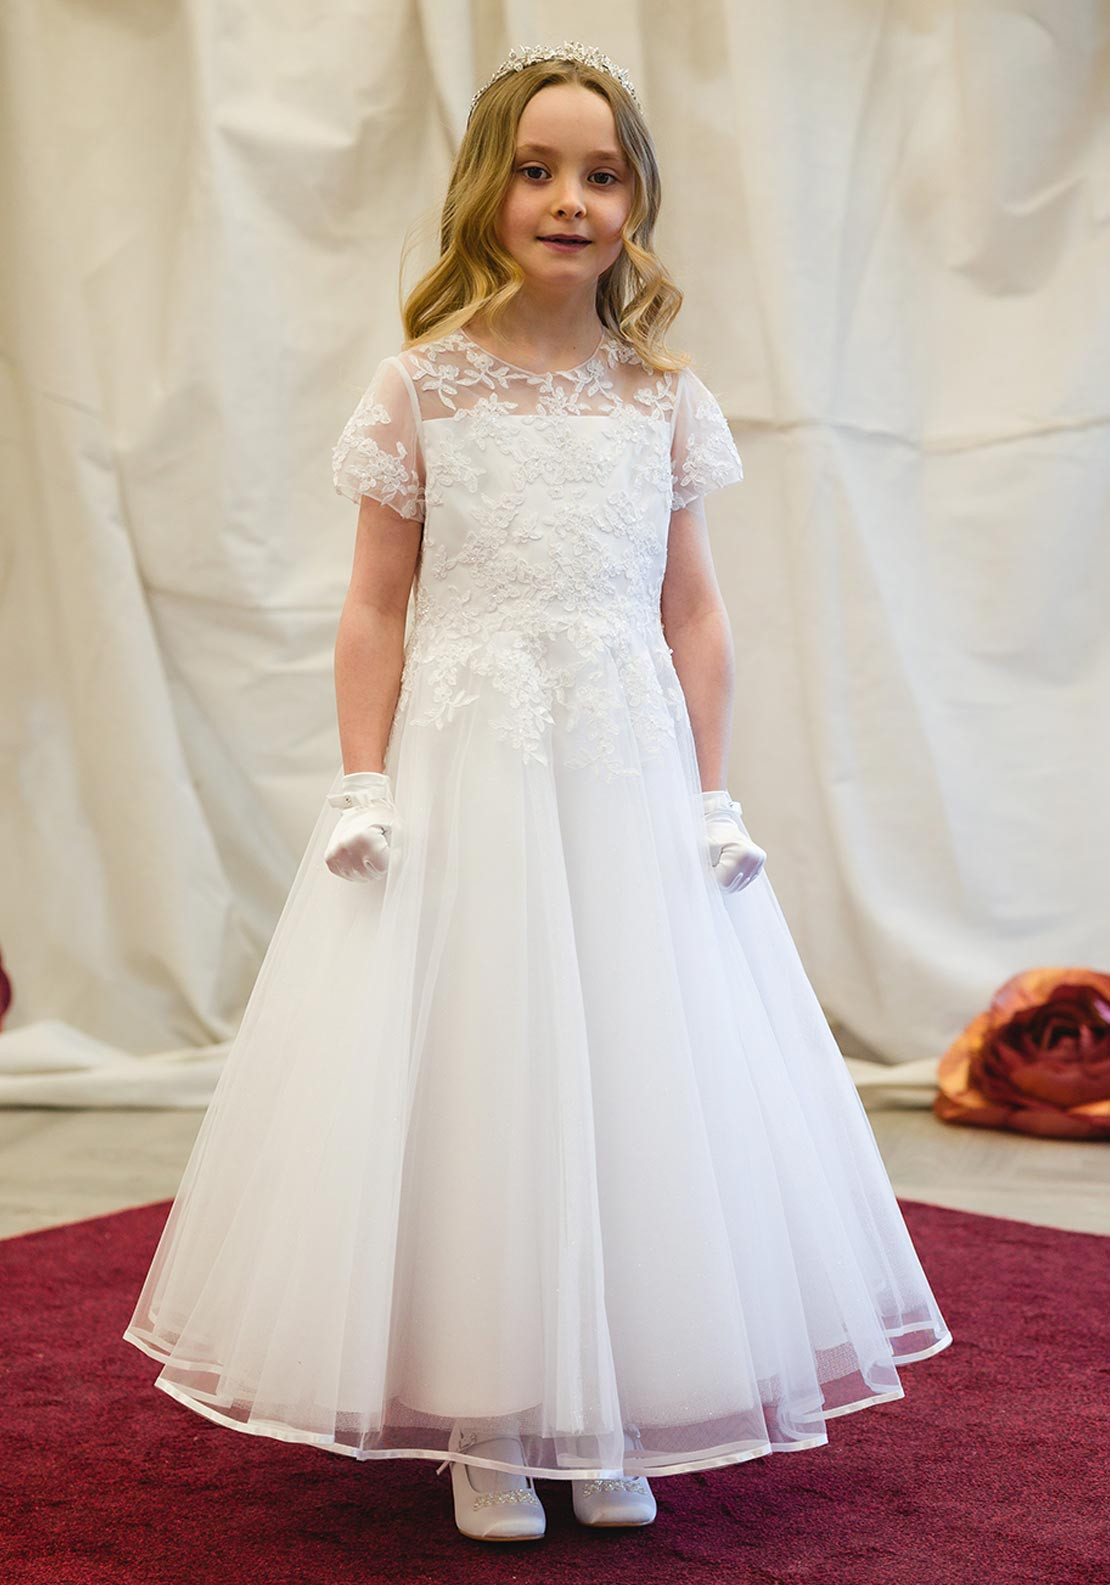 Isabella IS21943 Lace Bodice Tulle Communion Dress, White